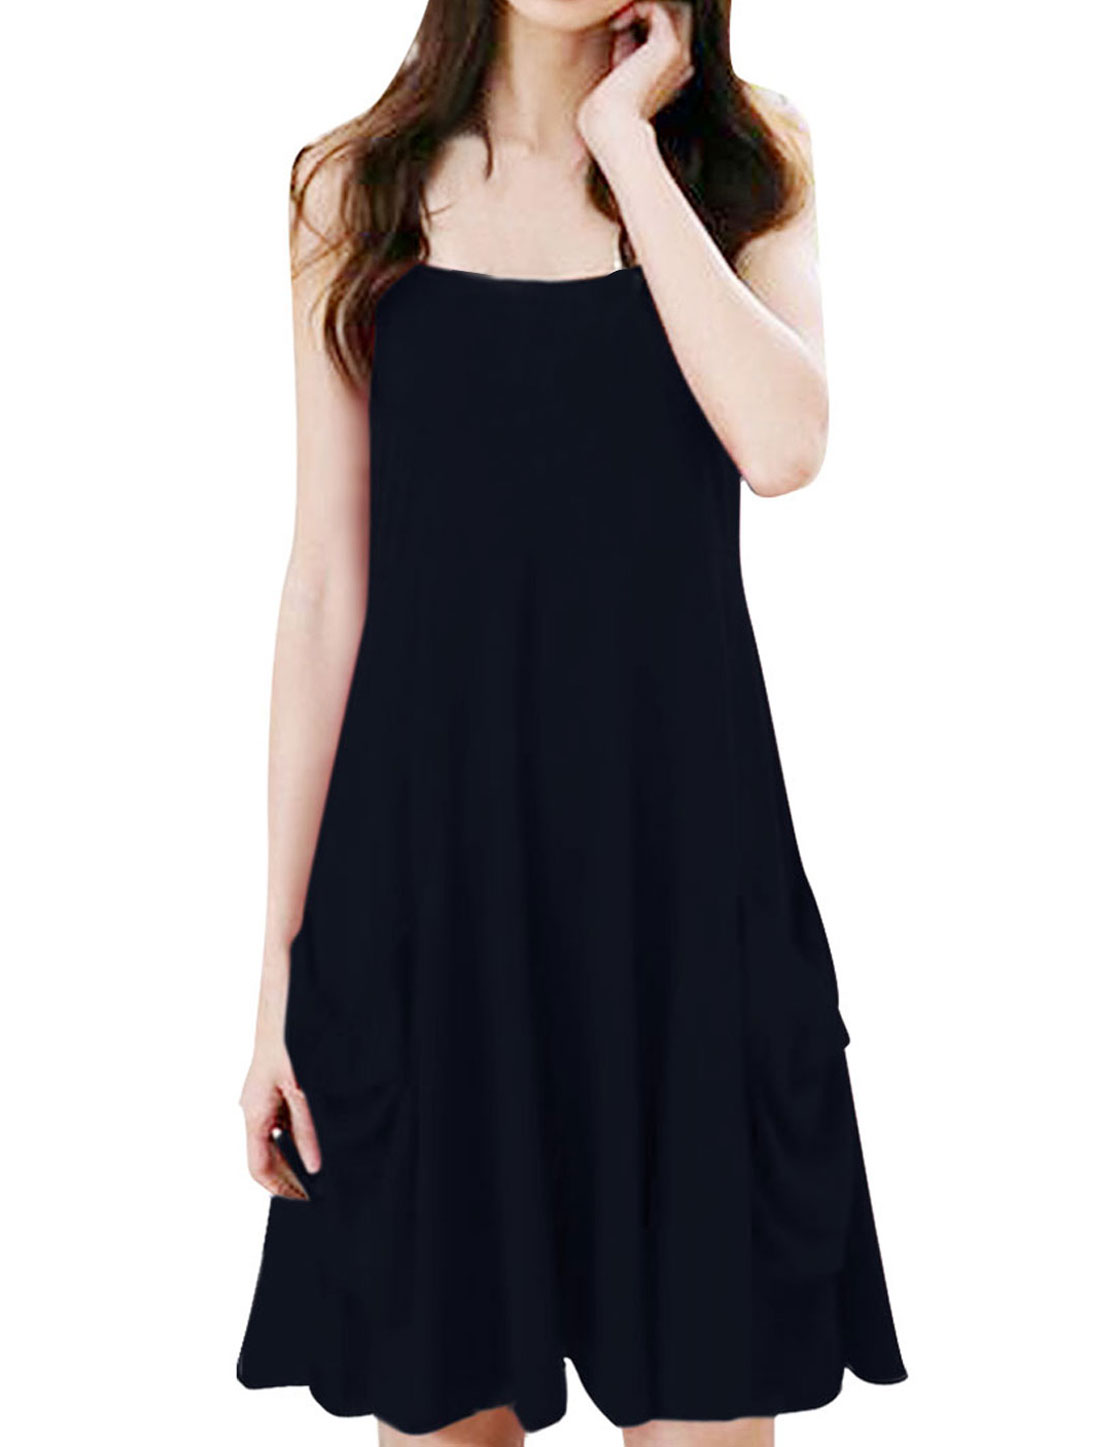 Ladies Adjustable Strap Pullover Sleeveless Pockets Below Dress Navy Blue XS